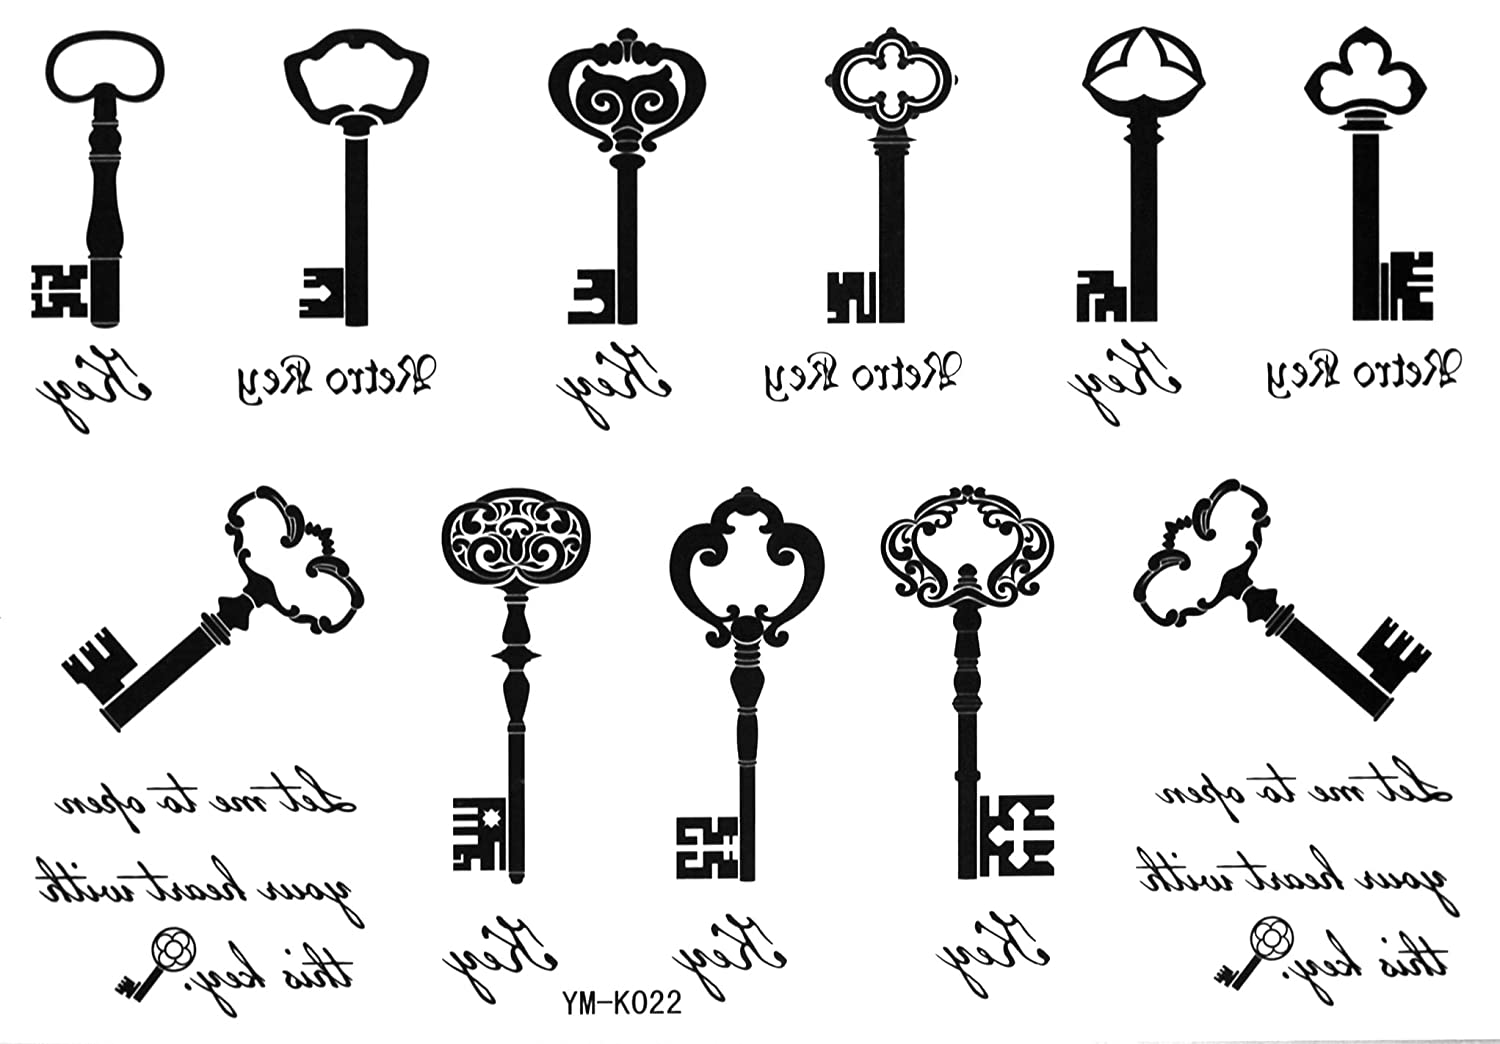 Amazon Com Key Tattoo Stickers Waterproof For Men Women The Black White Letter Keys Tattoos Totem Temporary Tattoo Stickers Body Paint Makeup Beauty Skeleton key tattoos for men. key tattoo stickers waterproof for men women the black white letter keys tattoos totem temporary tattoo stickers